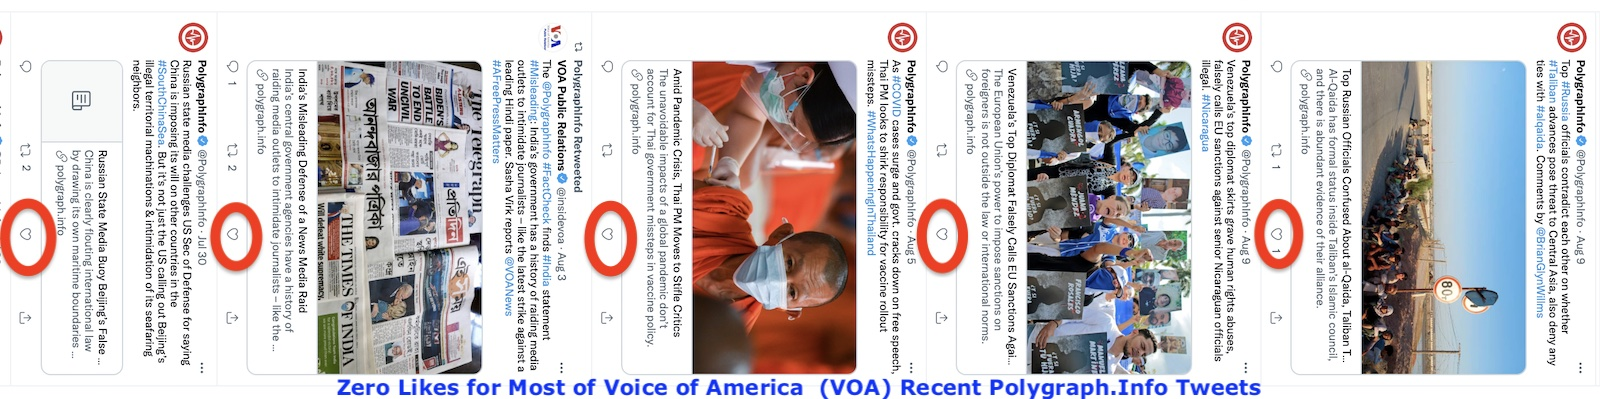 Zero Likes on Twitter for Most of Voice of America (VOA) Polygraph.Info tweets - Screen Shot 2021-08-13 at 6.38.07 PM.